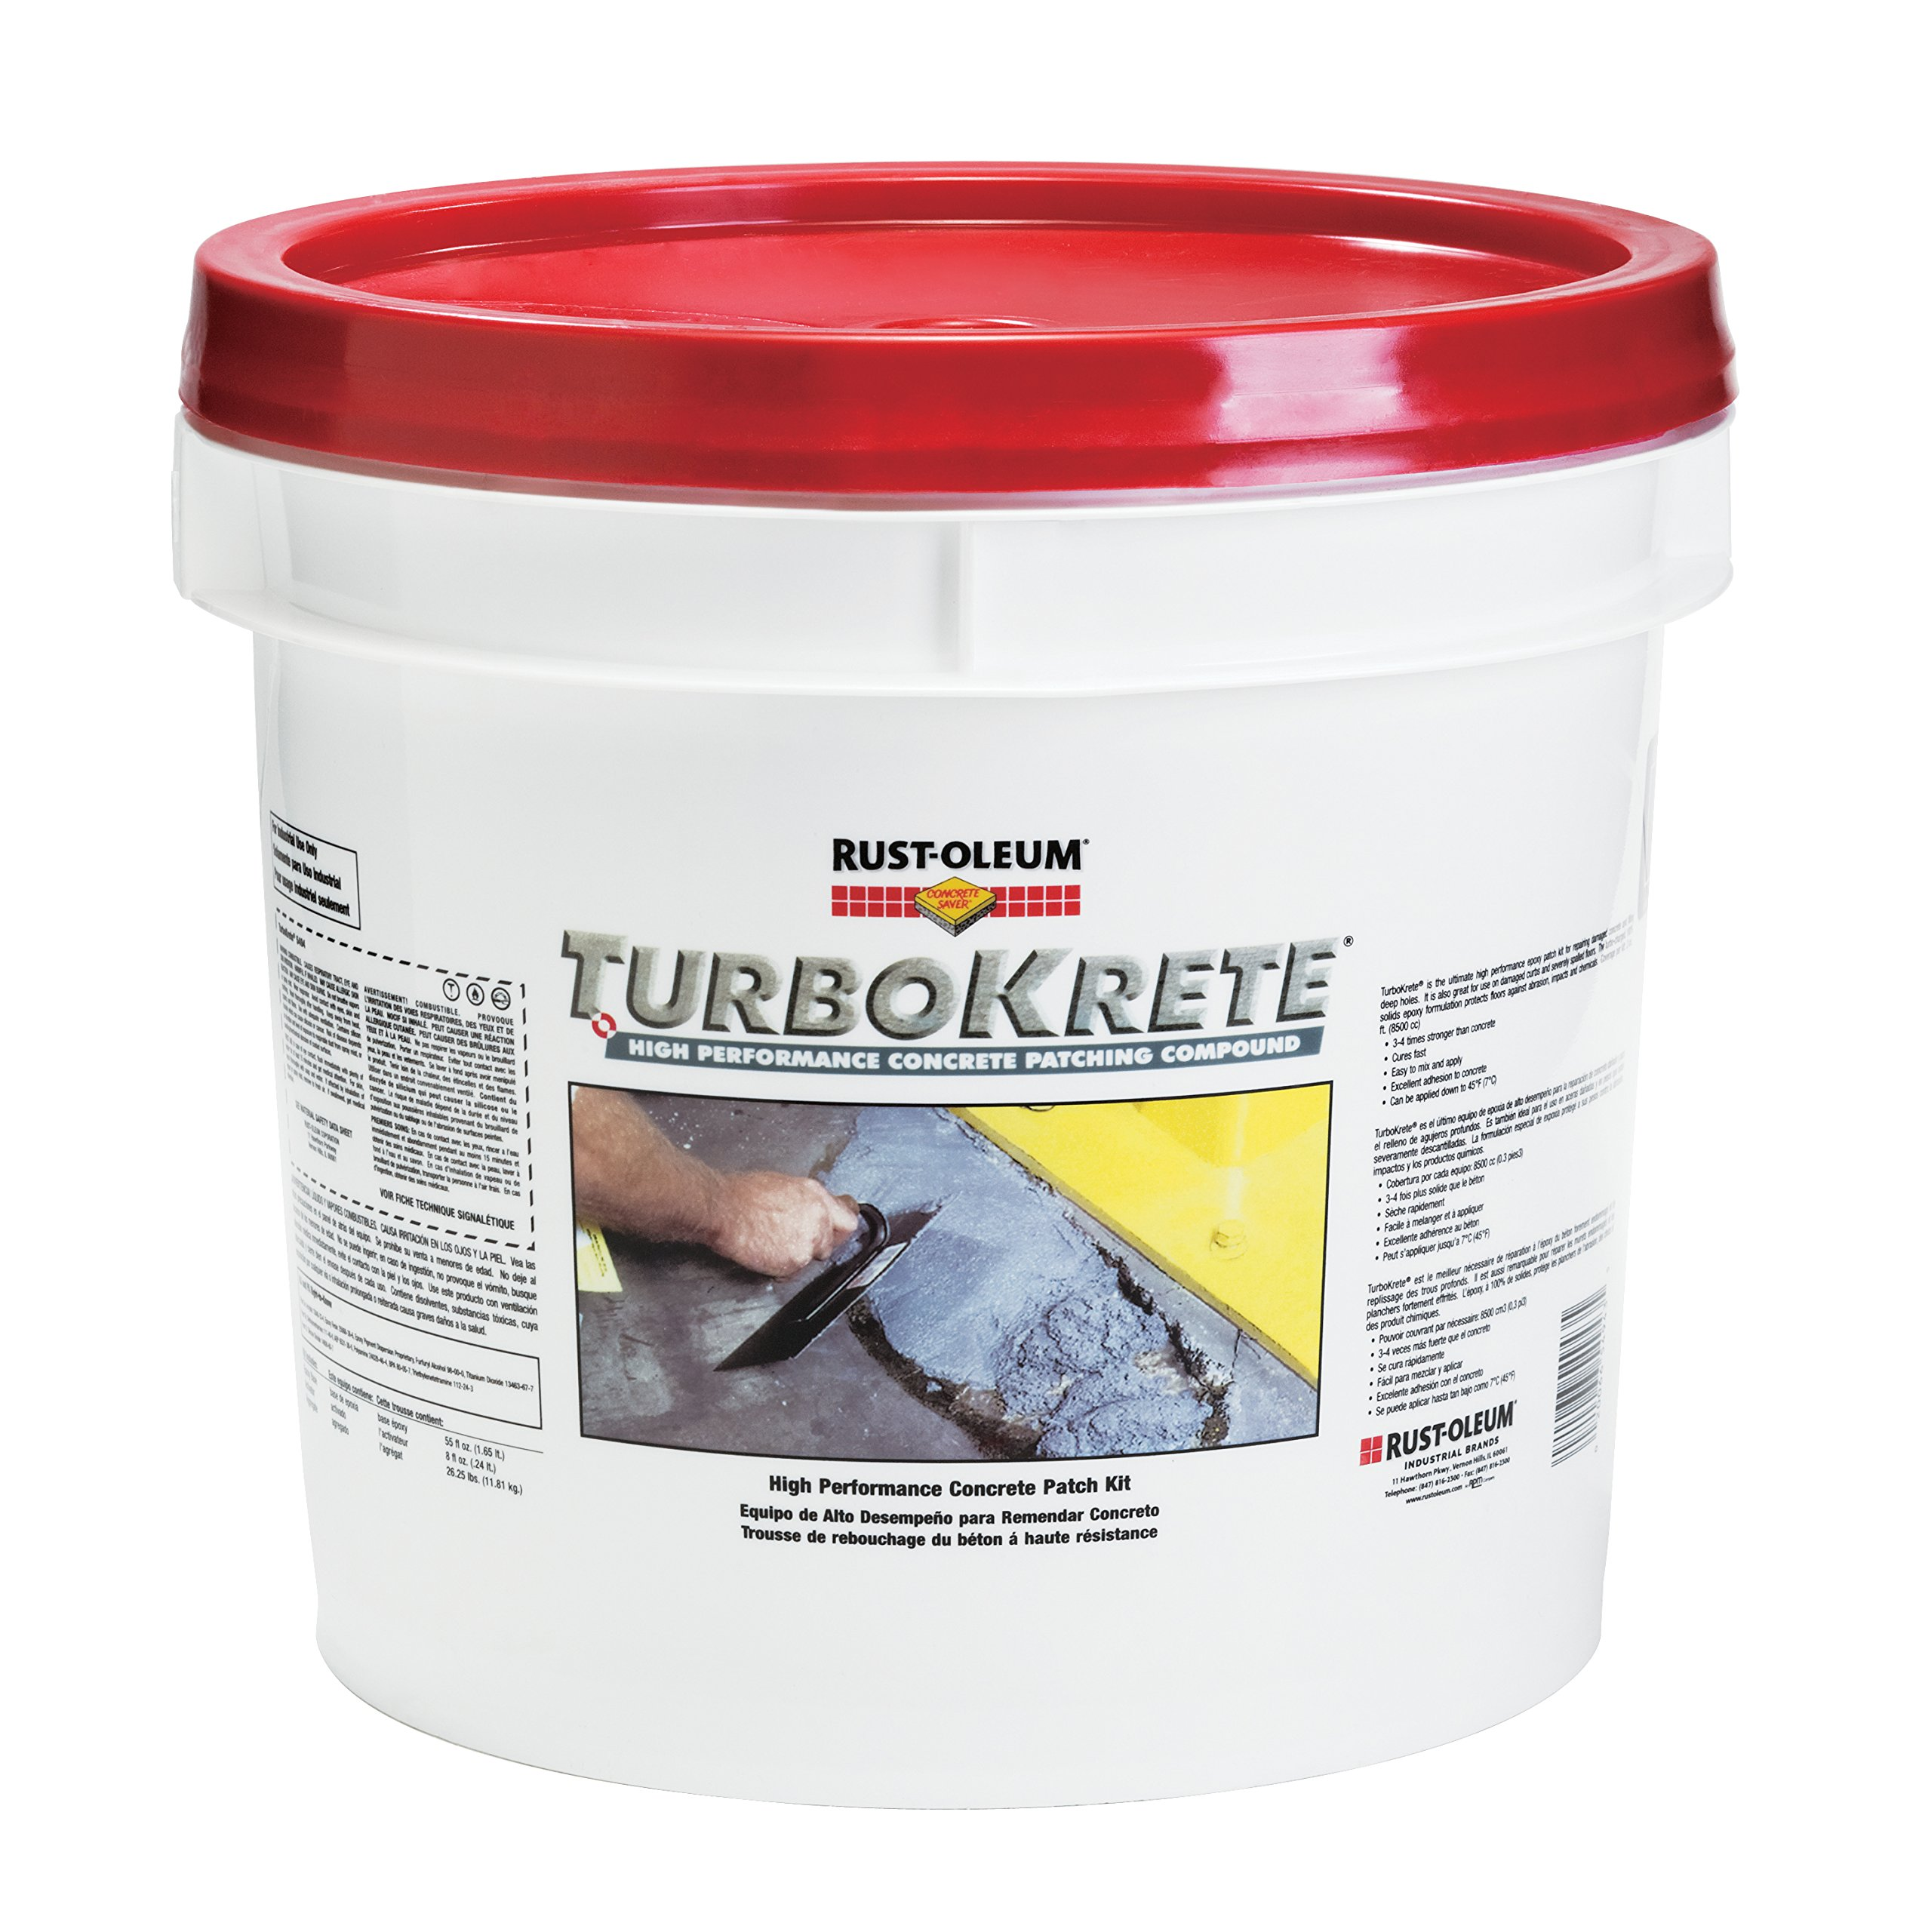 Rust-Oleum 5494323 Concrete Saver TurboKrete Concrete Patching Compound, 3.5-Gallon, Light Gray